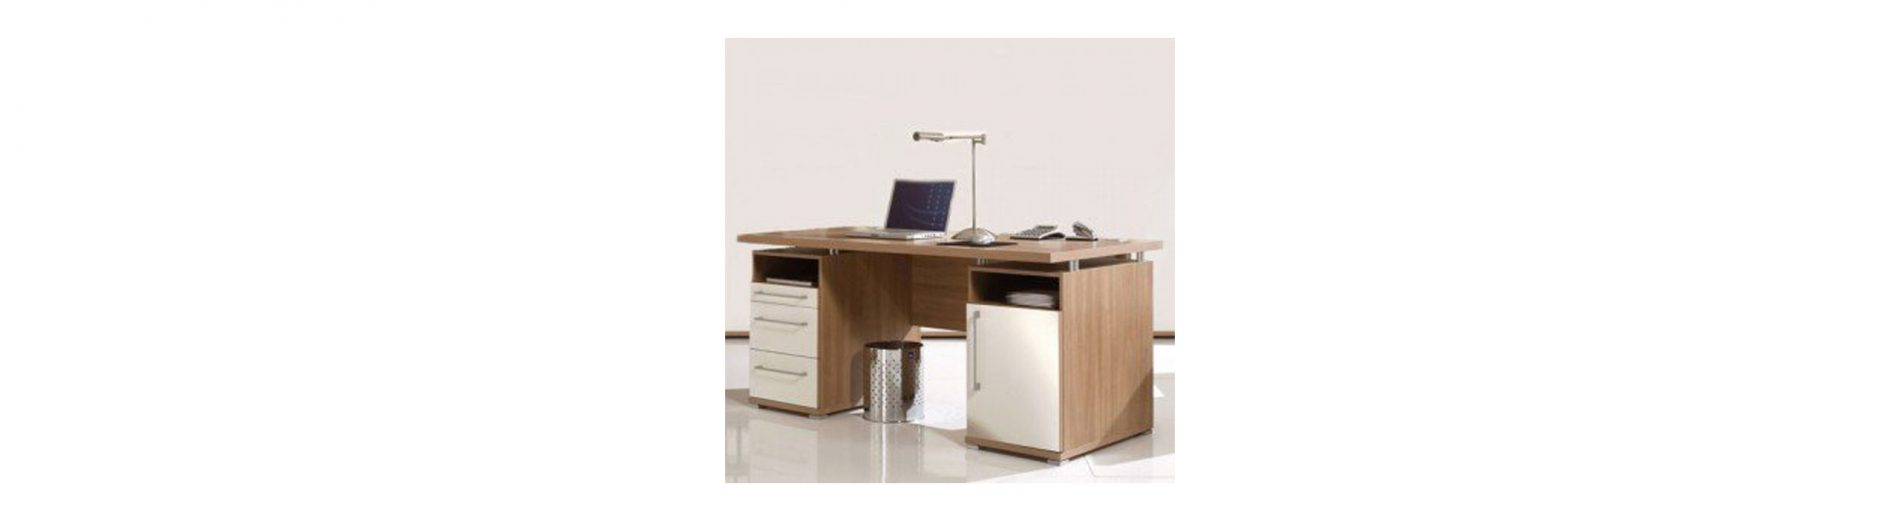 How to Find the Best Computer Table Brands?